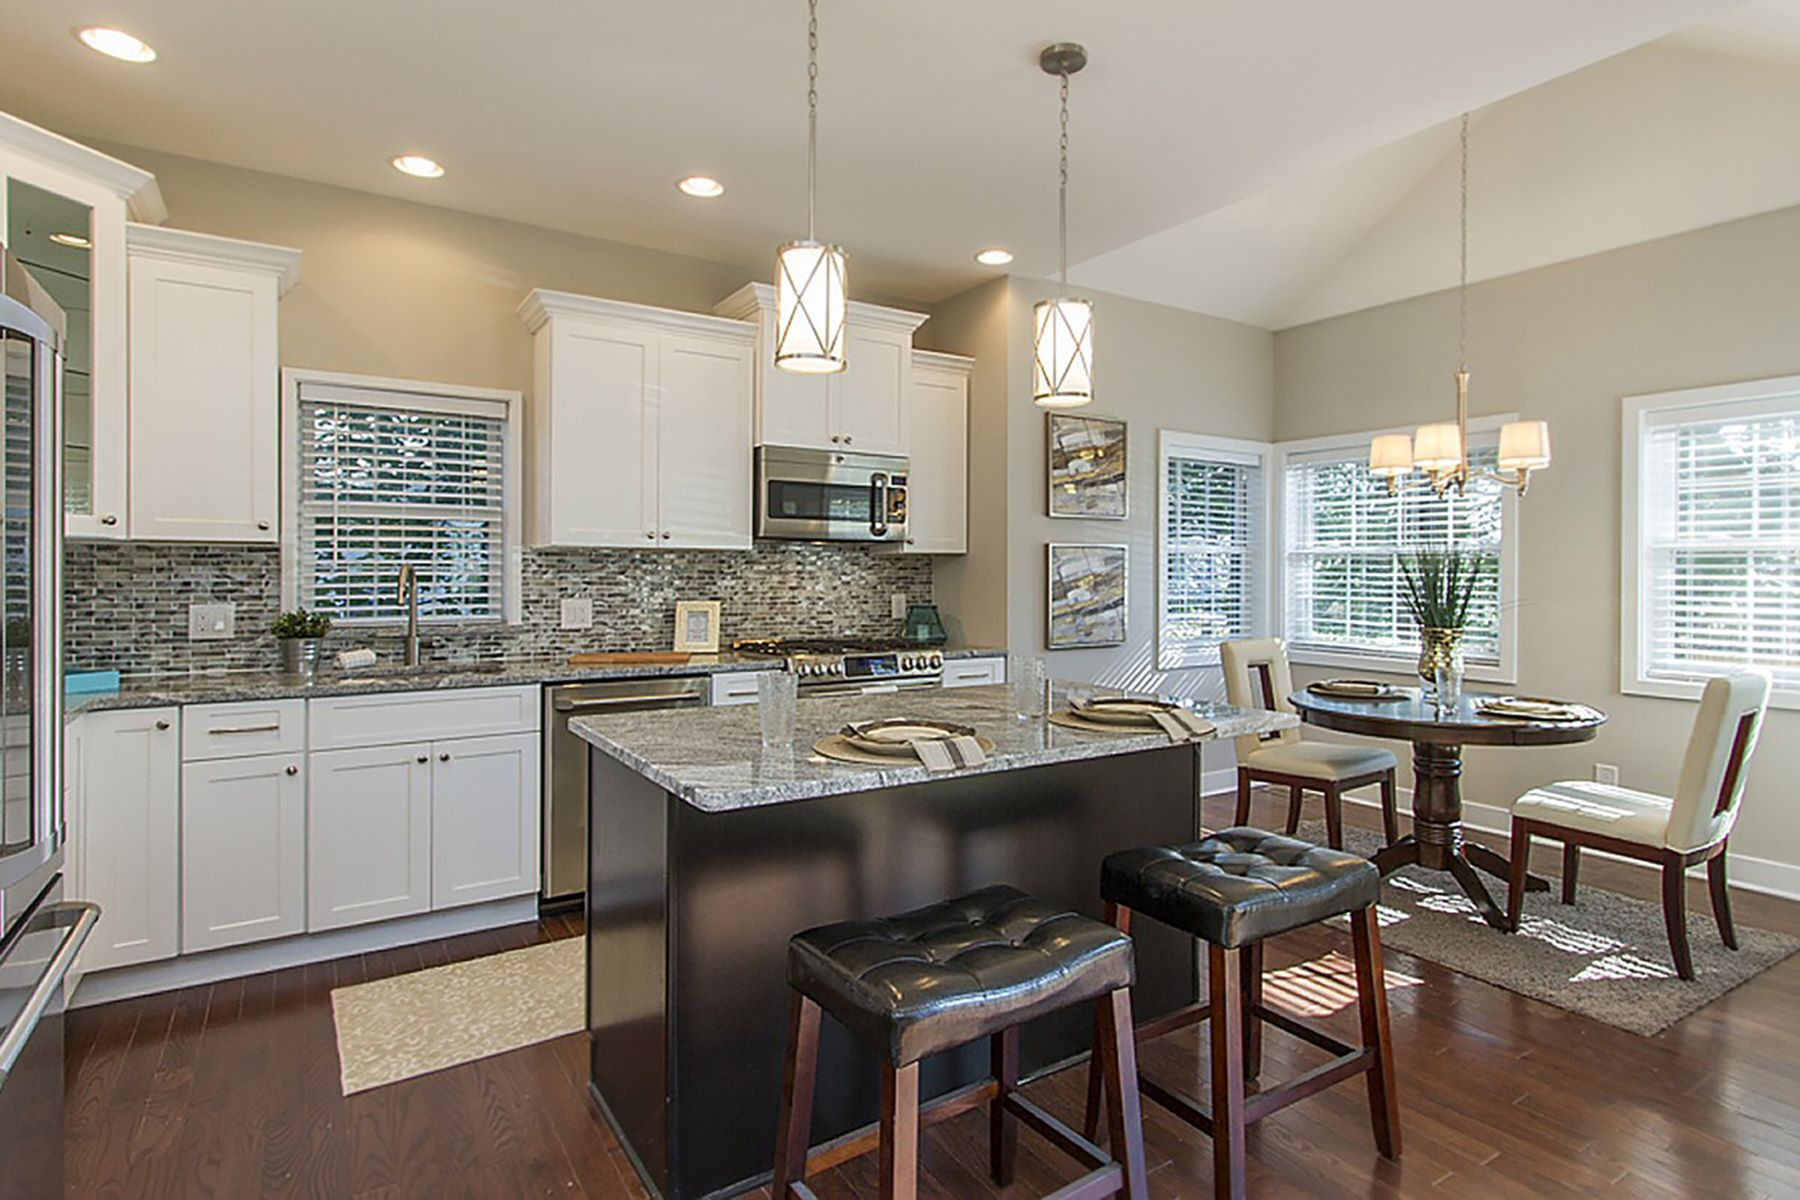 Additional photo for property listing at The Townhomes at Riverwalk Offer the Absolute Best 25 Riverwalk, Plainsboro, ニュージャージー 08536 アメリカ